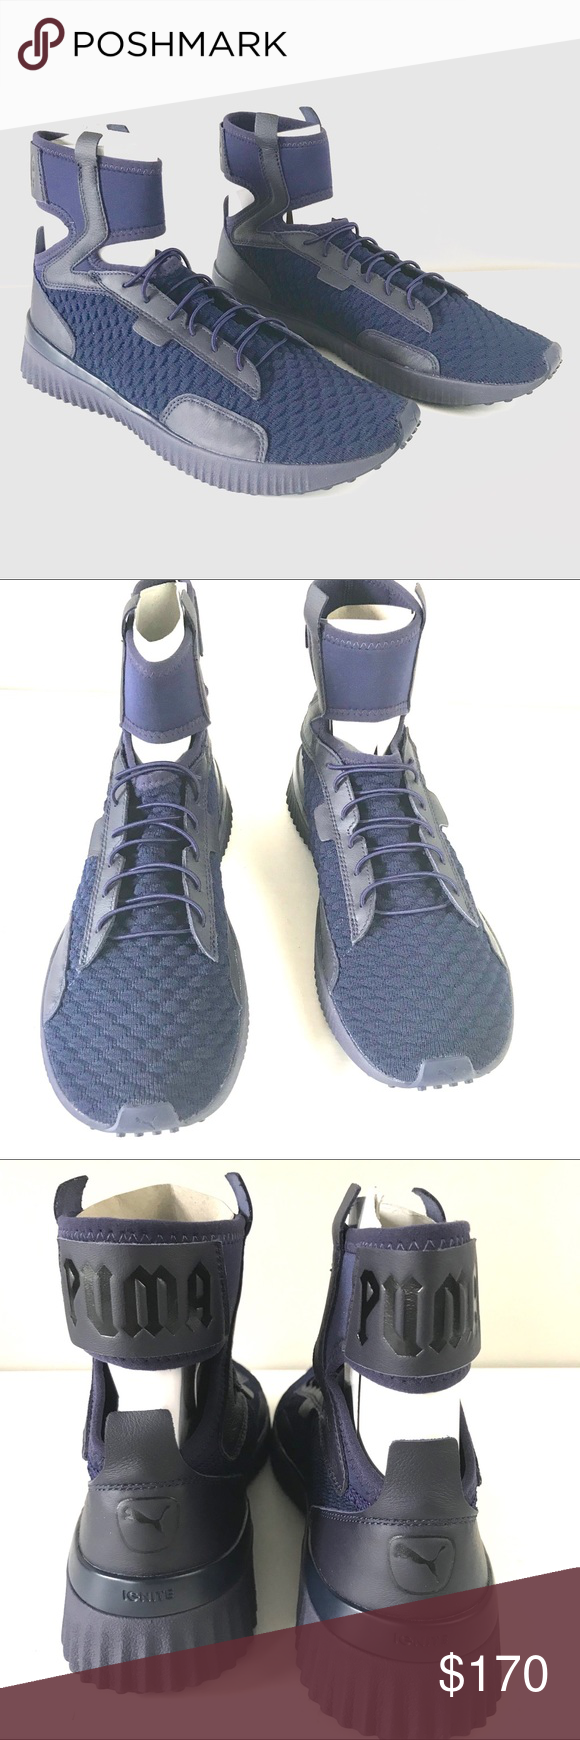 7111130faa5a Puma Fenty Men NEW trainer mid geo knit sneaker 10 Puma x Fenty Mens Trainer  Mid Geo Sneakers size 10 191379 Evening Blue From the Rihanna collaboration  ...